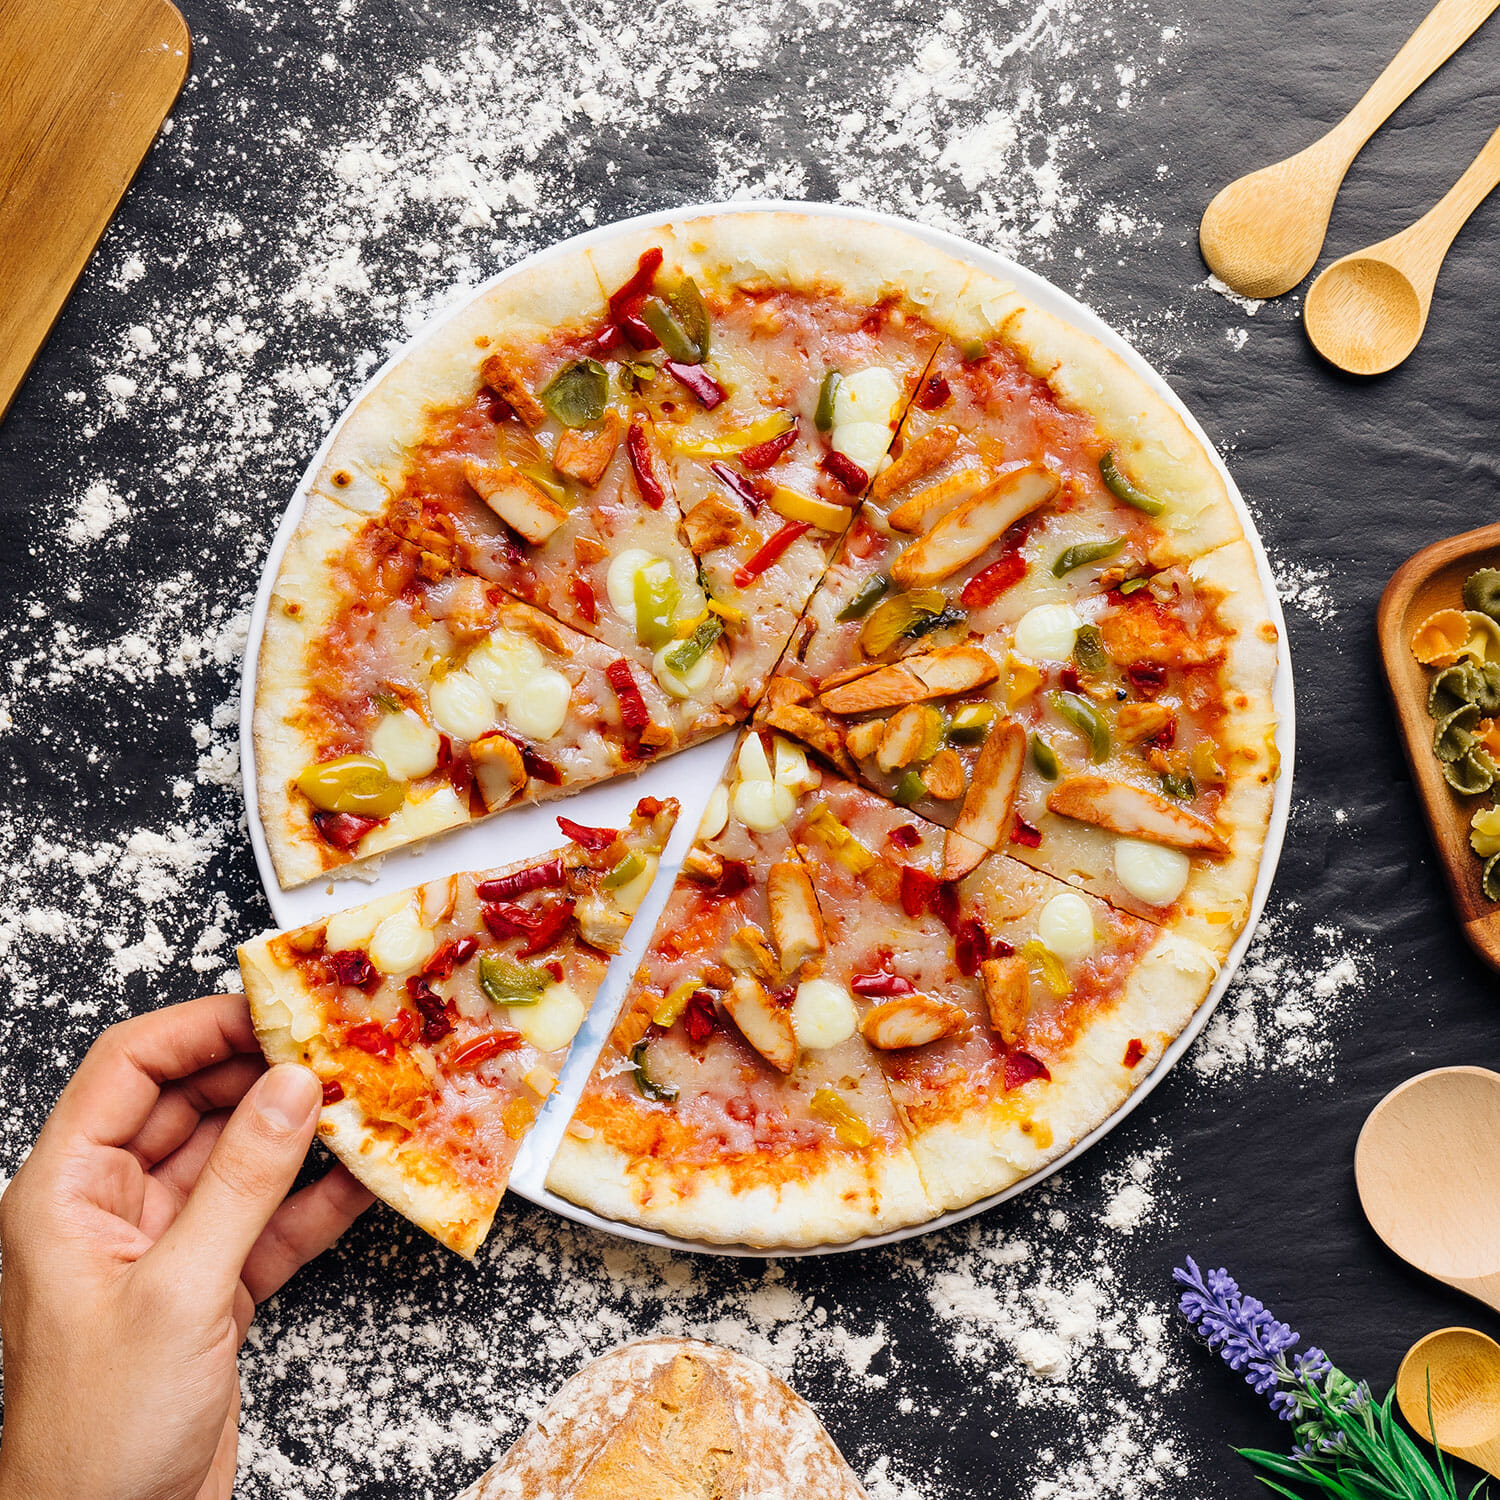 Make your pizza shop stand out from the rest with our new mover marketing program!